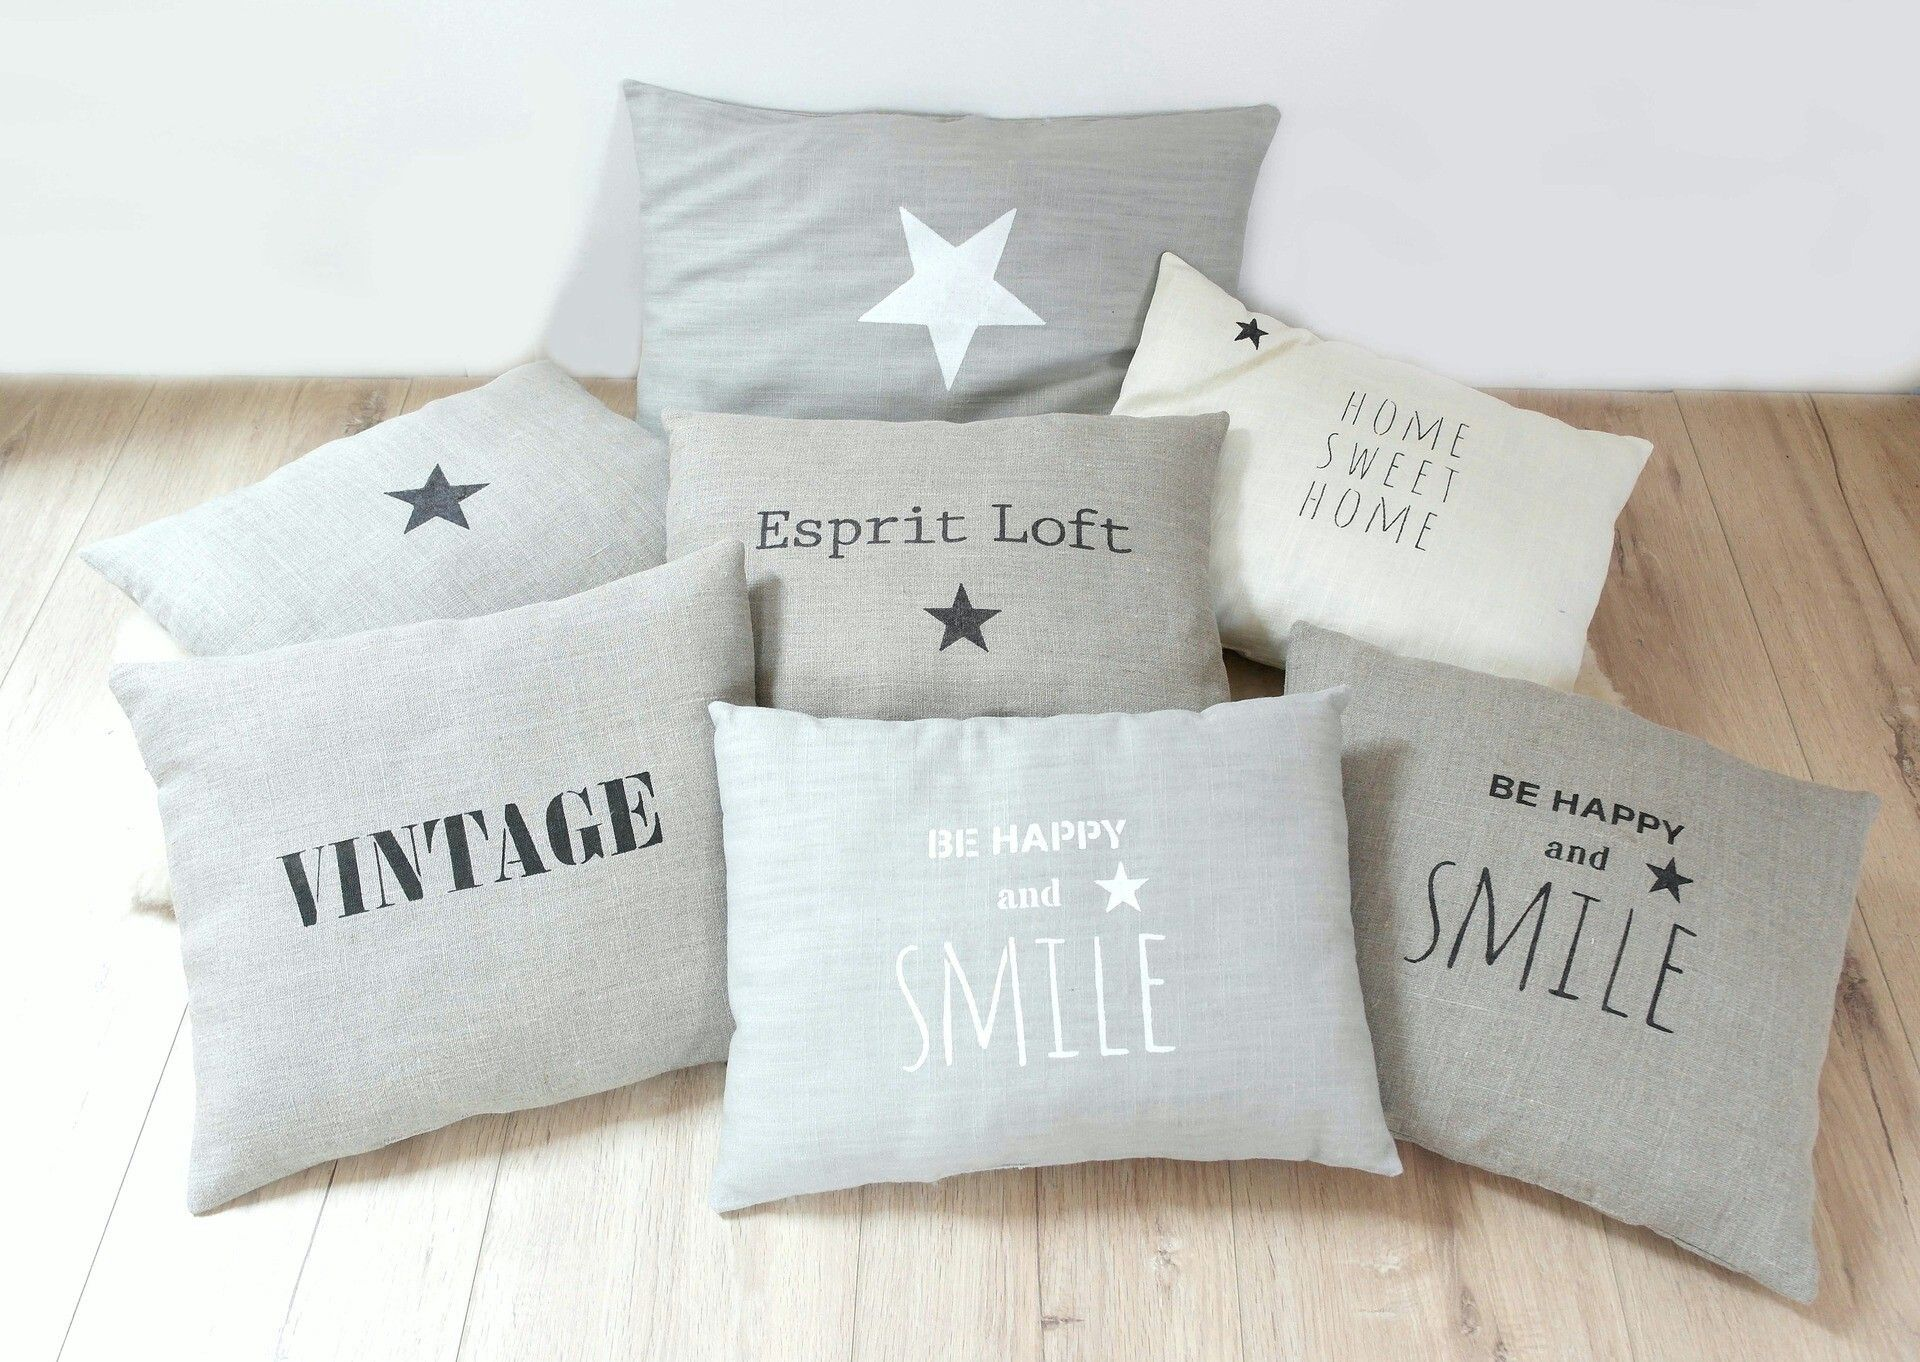 coussin typographie vintage en lin naturel avec inscription 3 pommes dans un panier a little. Black Bedroom Furniture Sets. Home Design Ideas